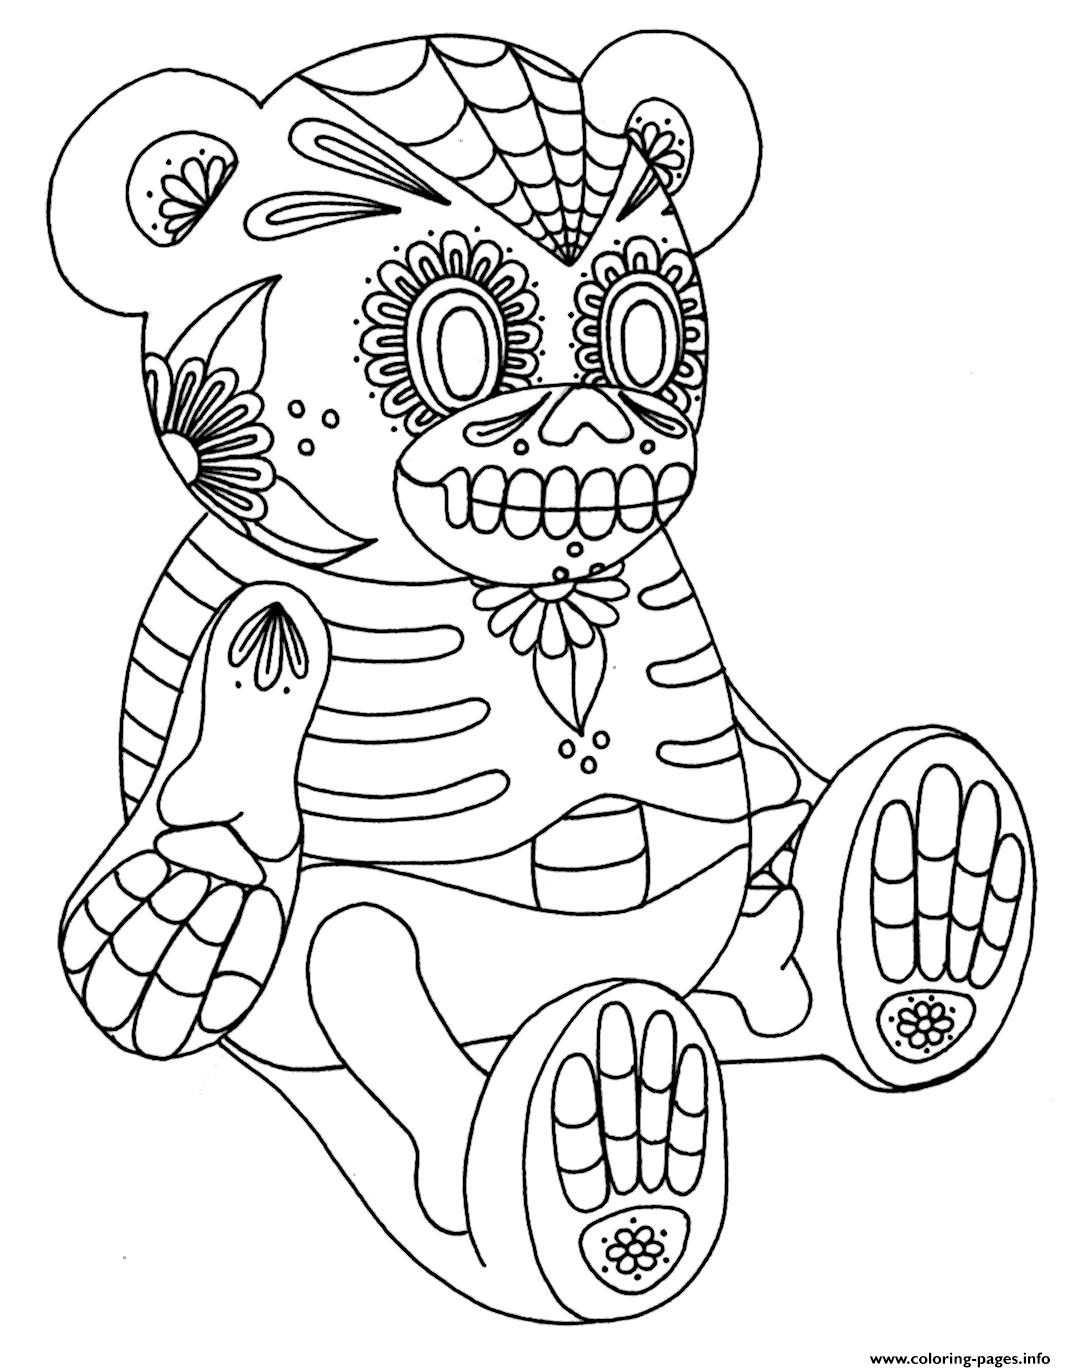 cool skull design coloring pages virtren com